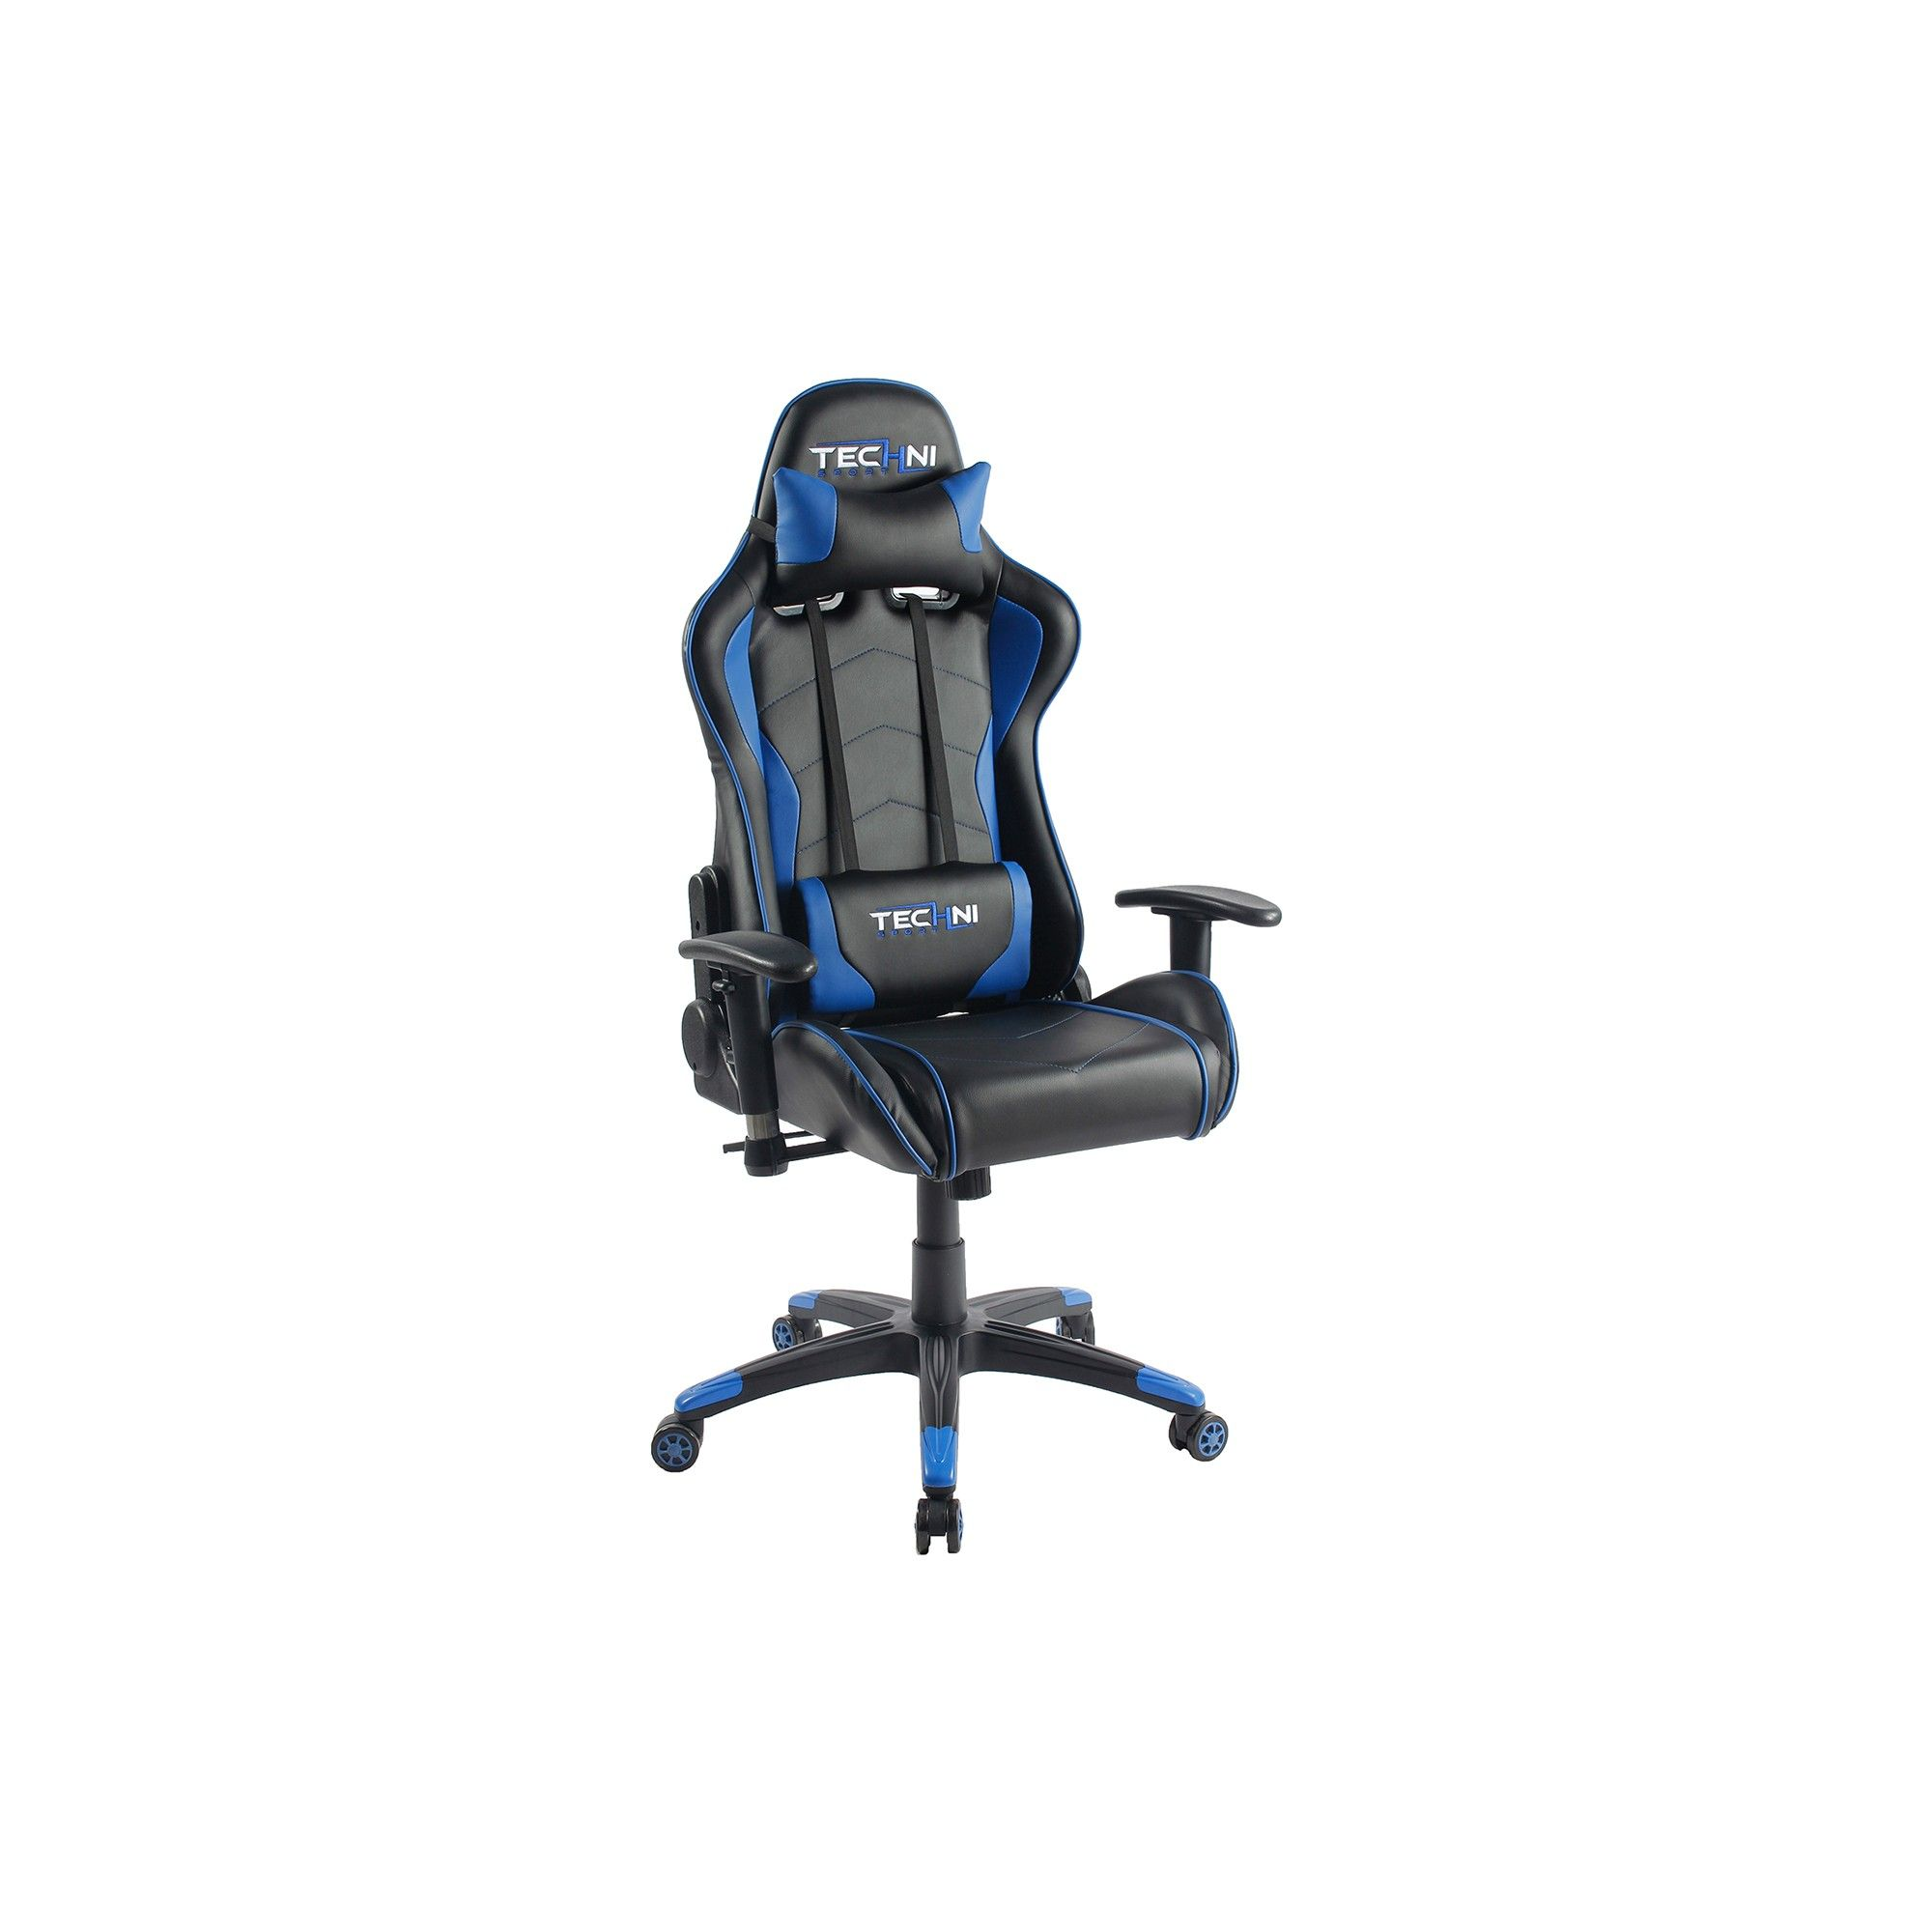 Küchenideen entlang einer wand ts ergonomic high back computer racing gaming chair  blue